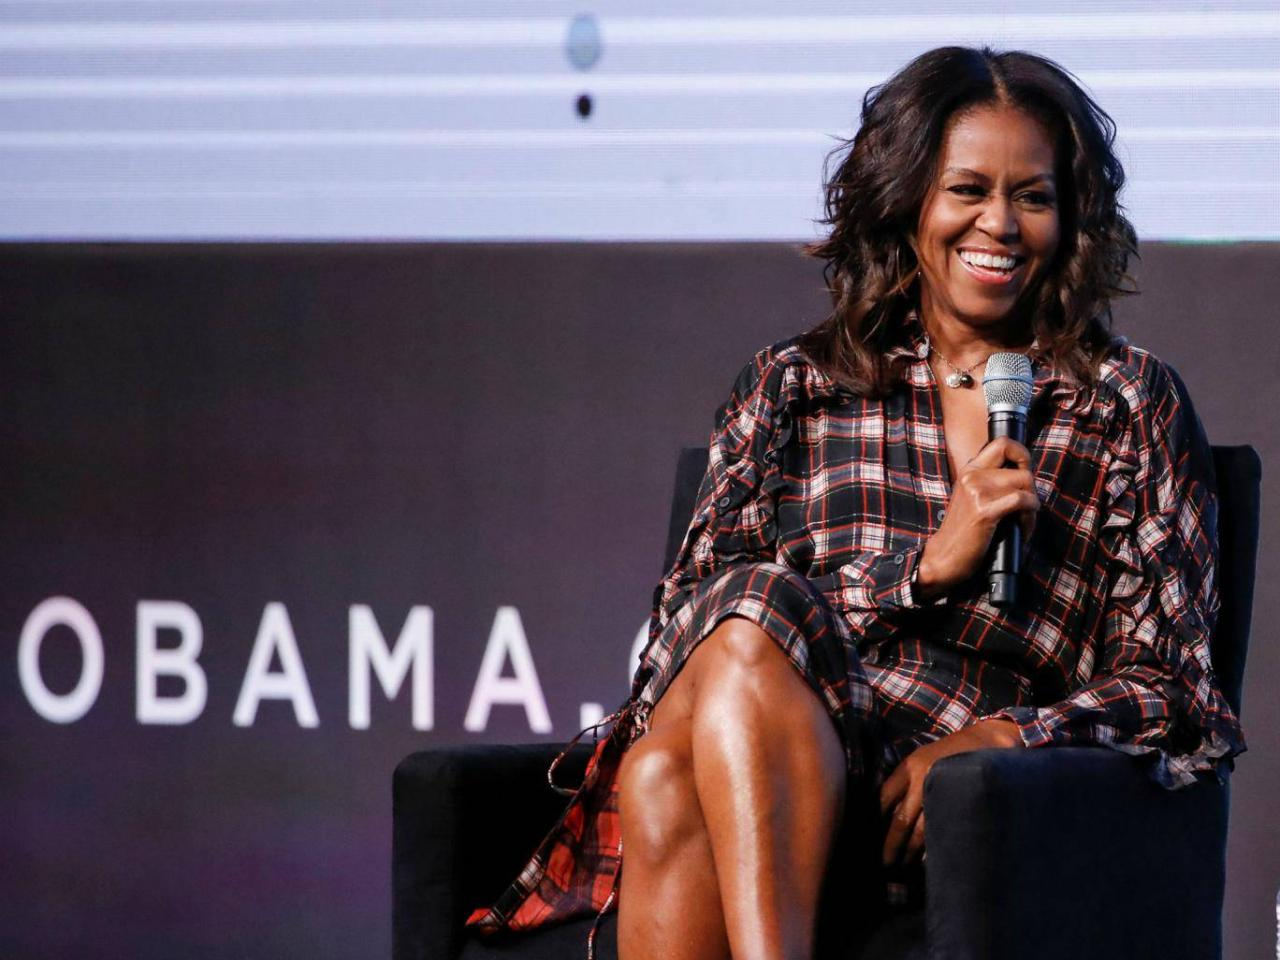 READ MICHELLE OBAMA'S HEARTWARMING MESSAGE TO BLACK PANTHER TEAM